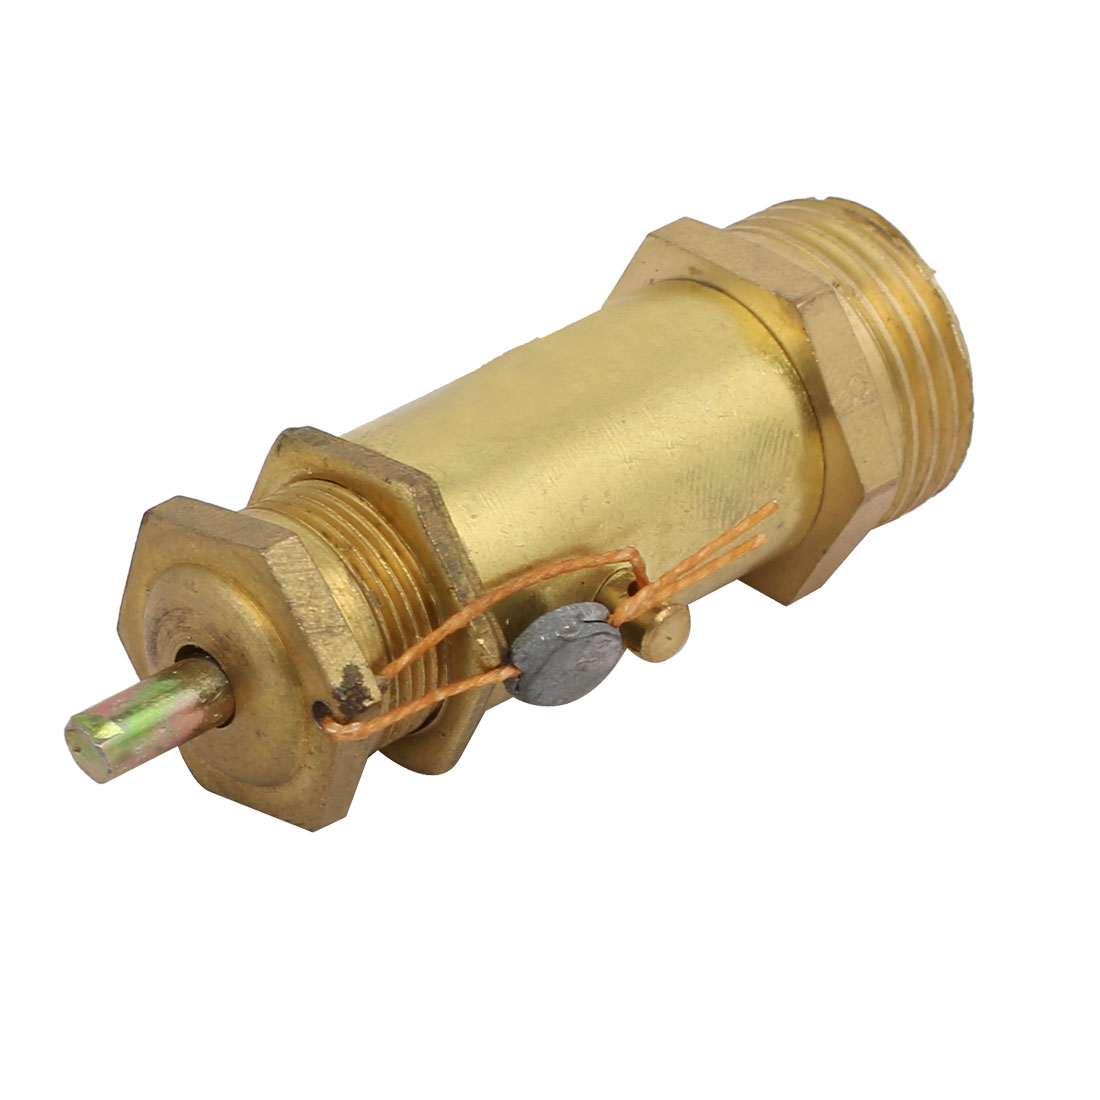 Unique Bargains 1/2PT Male Threaded Air Compressor Safety Pressure Relief Valve